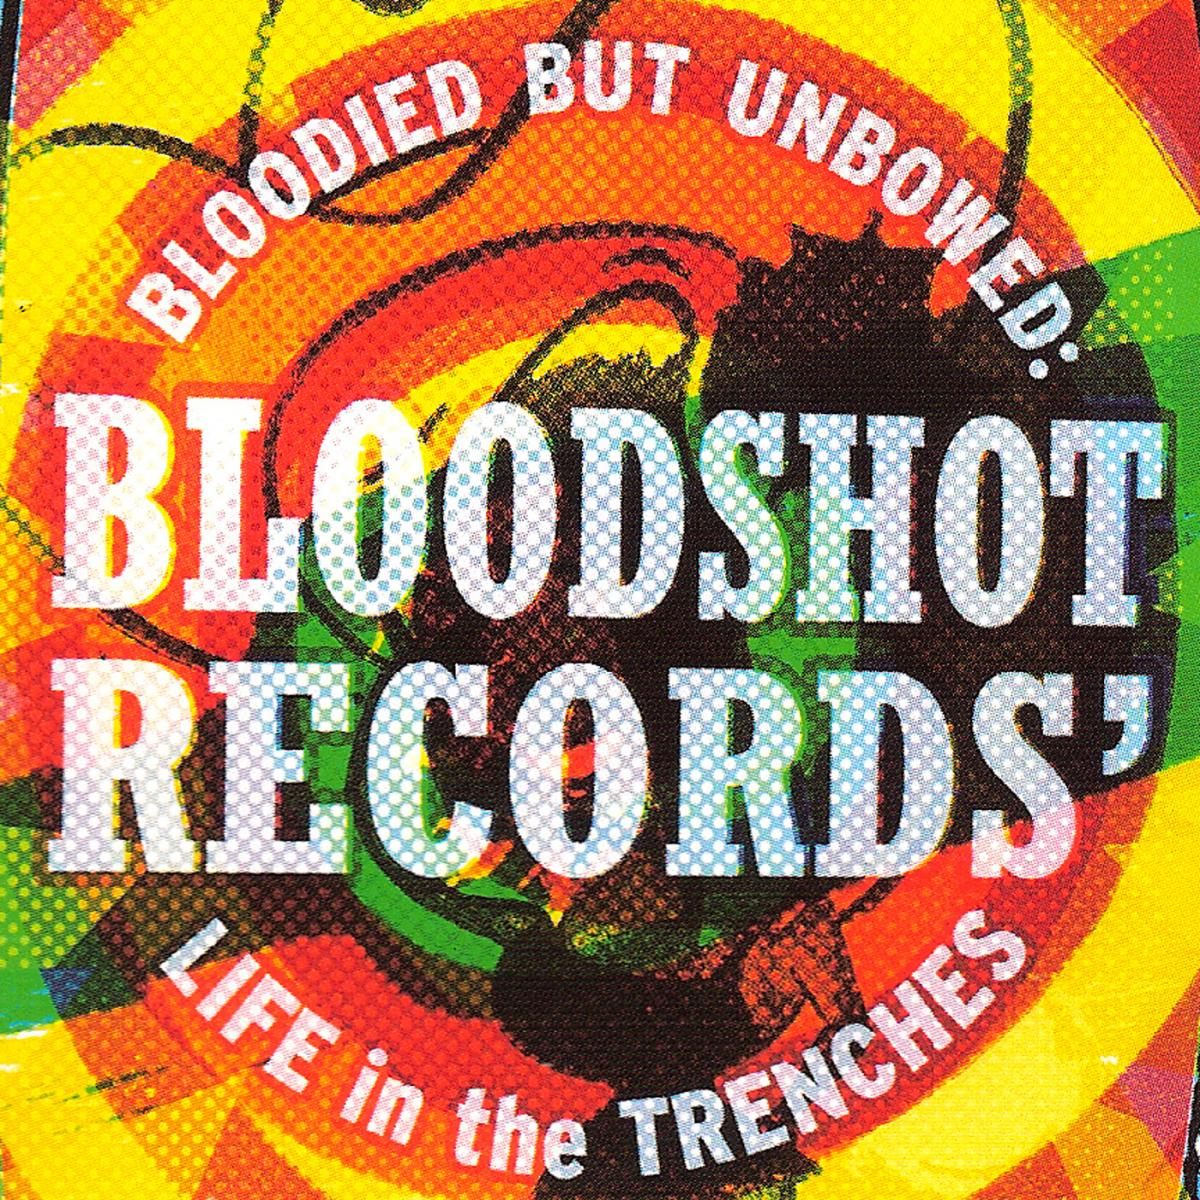 Bloodshot Records Bloodied But Unbowed Life in the Trenches DVD Soundtrack